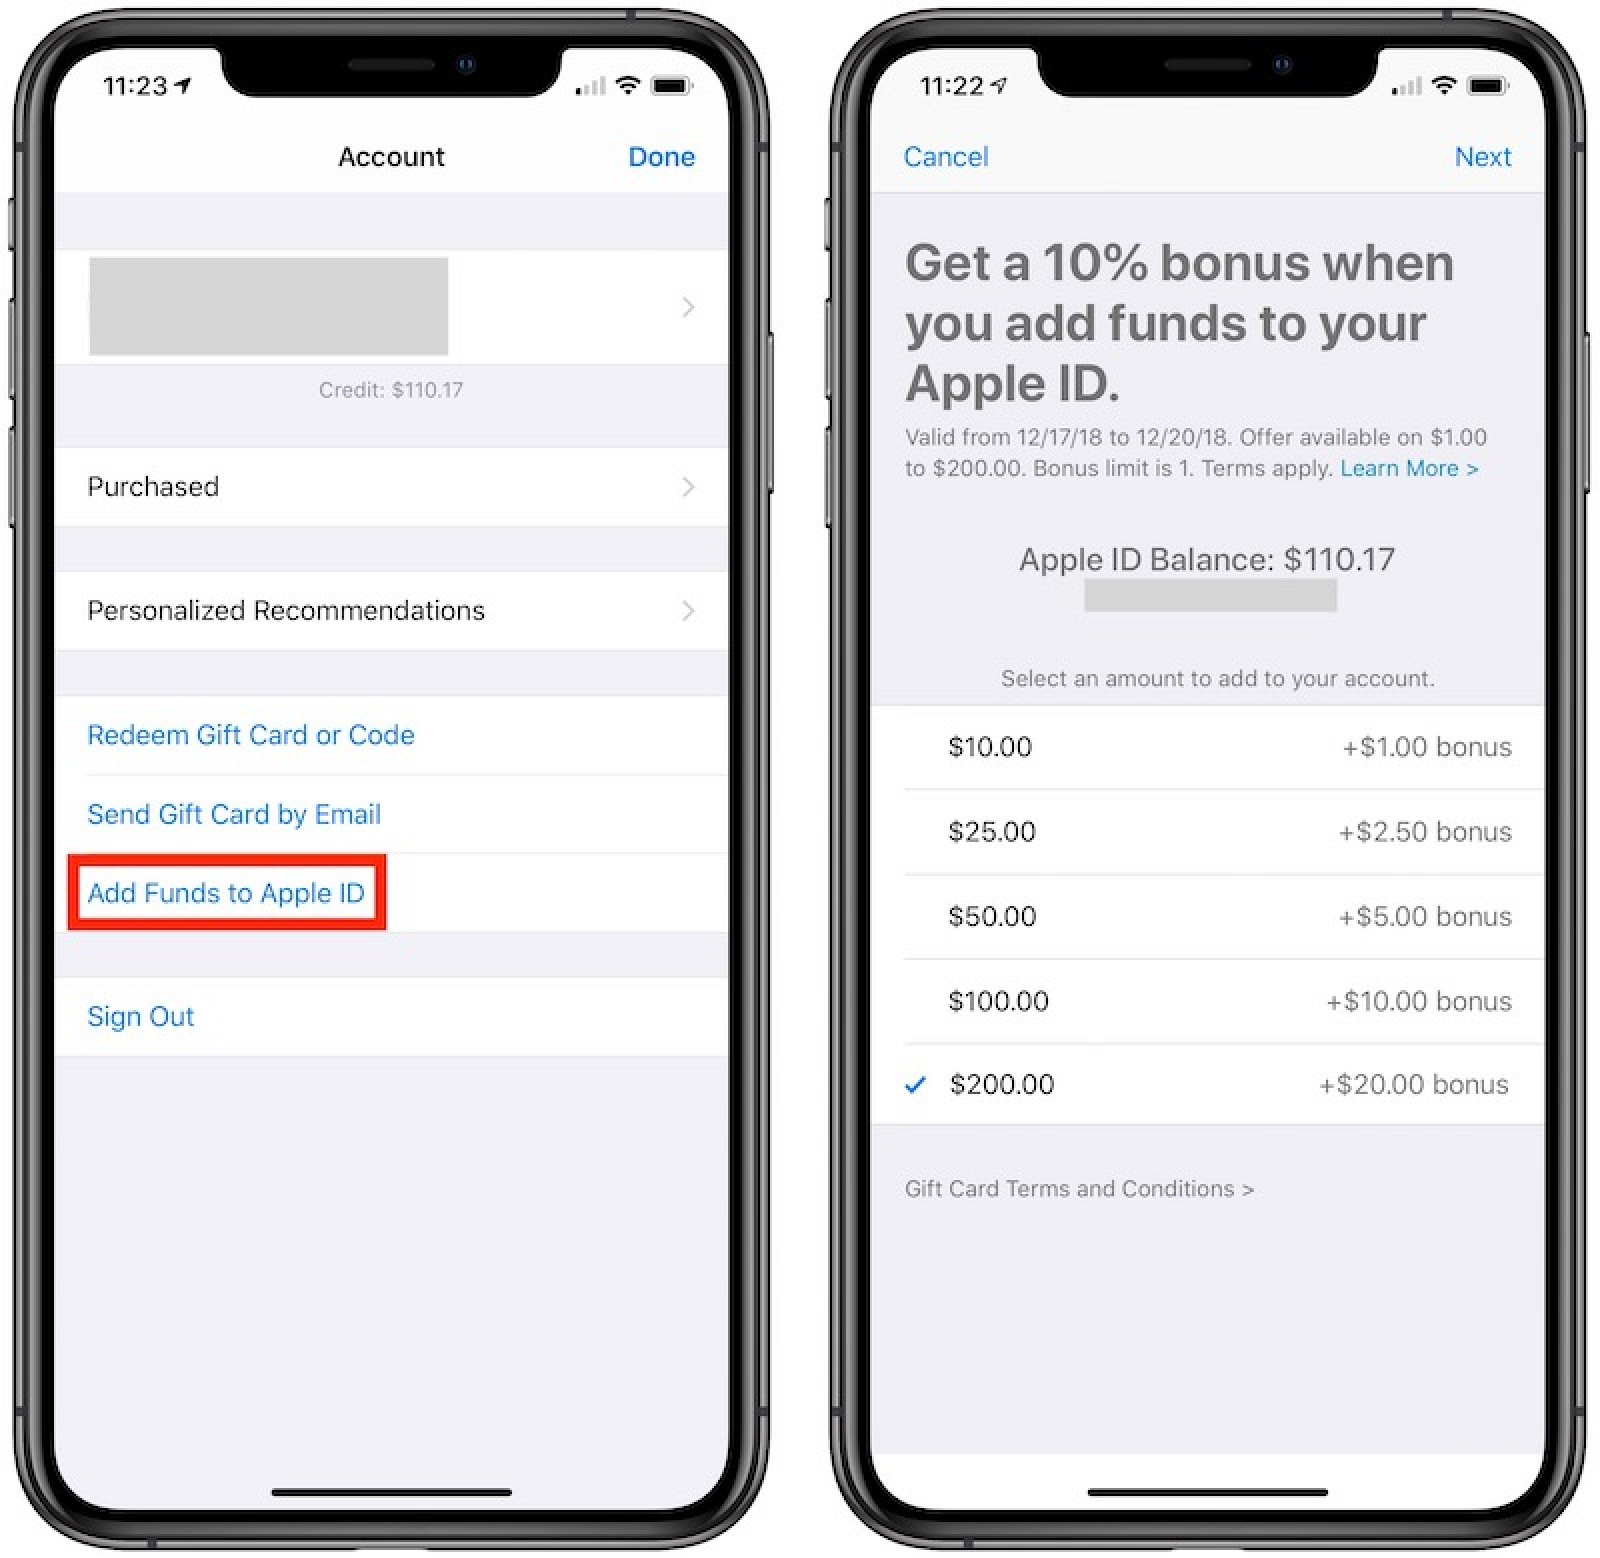 photo of Apple Offering 10% Bonus When Adding Funds Directly to Apple ID image